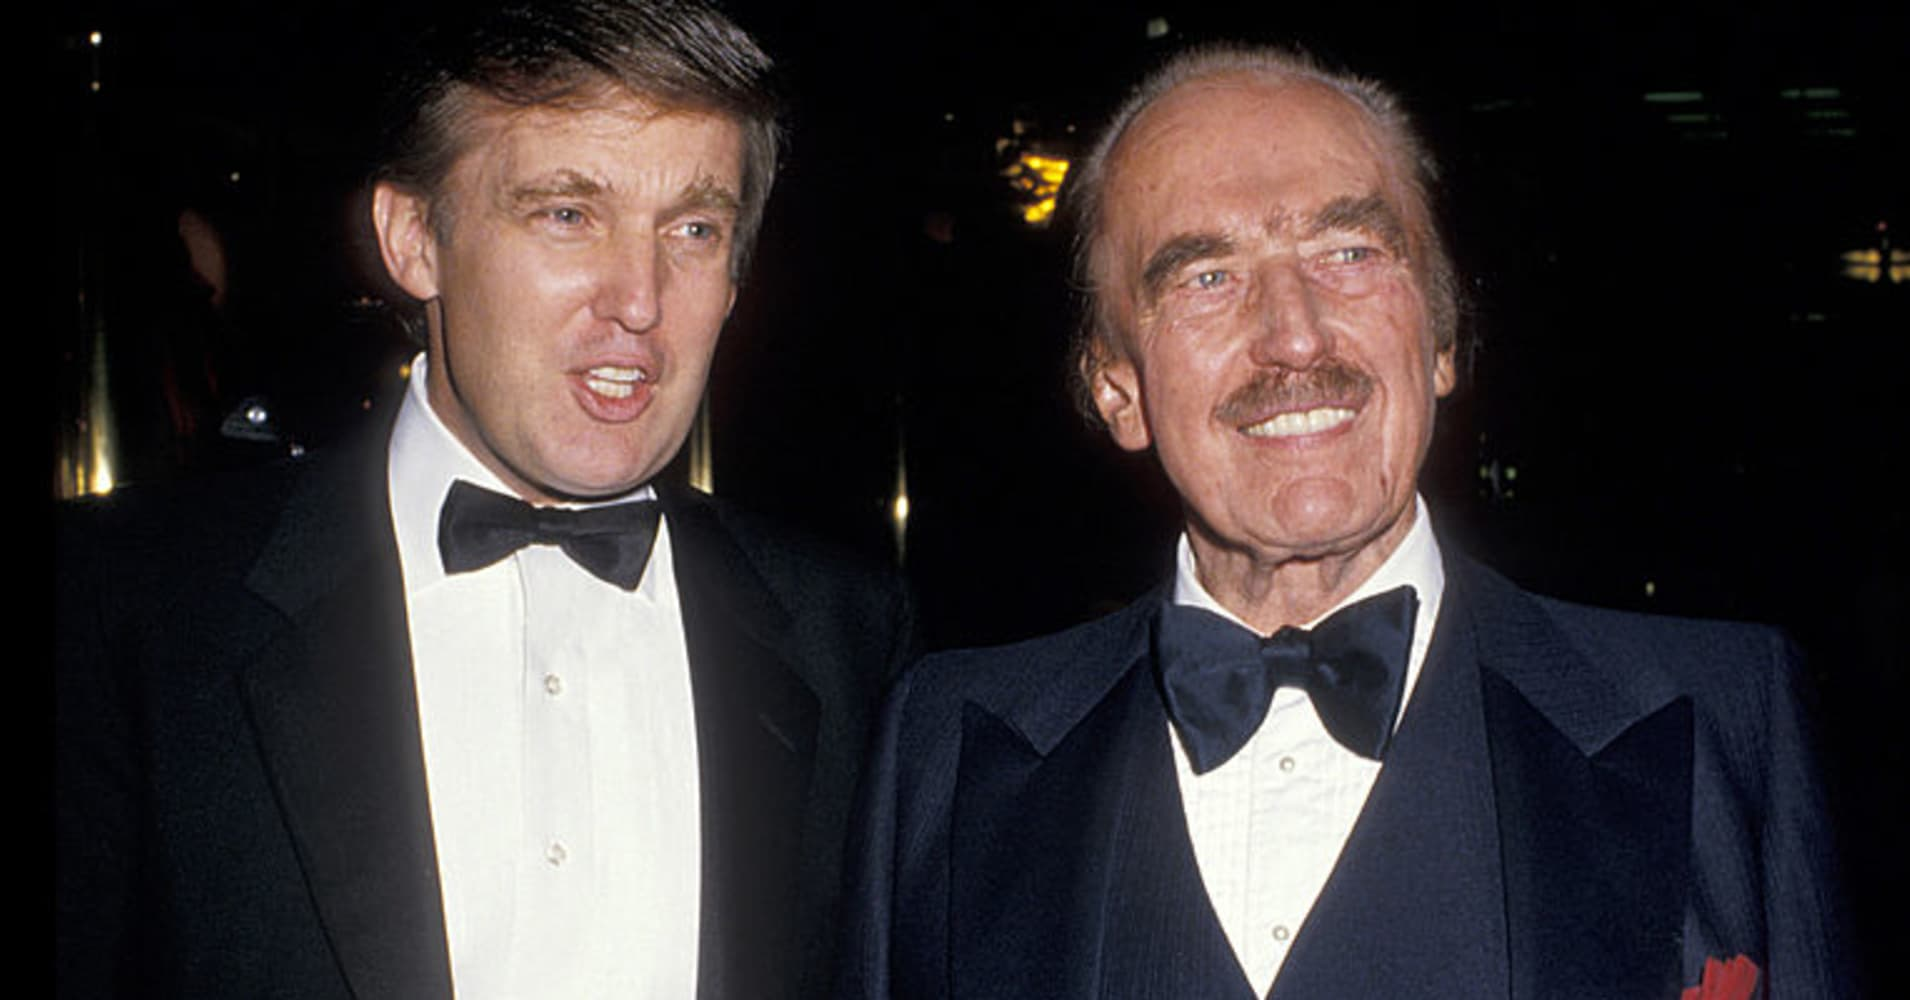 Donald Trump's dad shared great advice about how to be successful